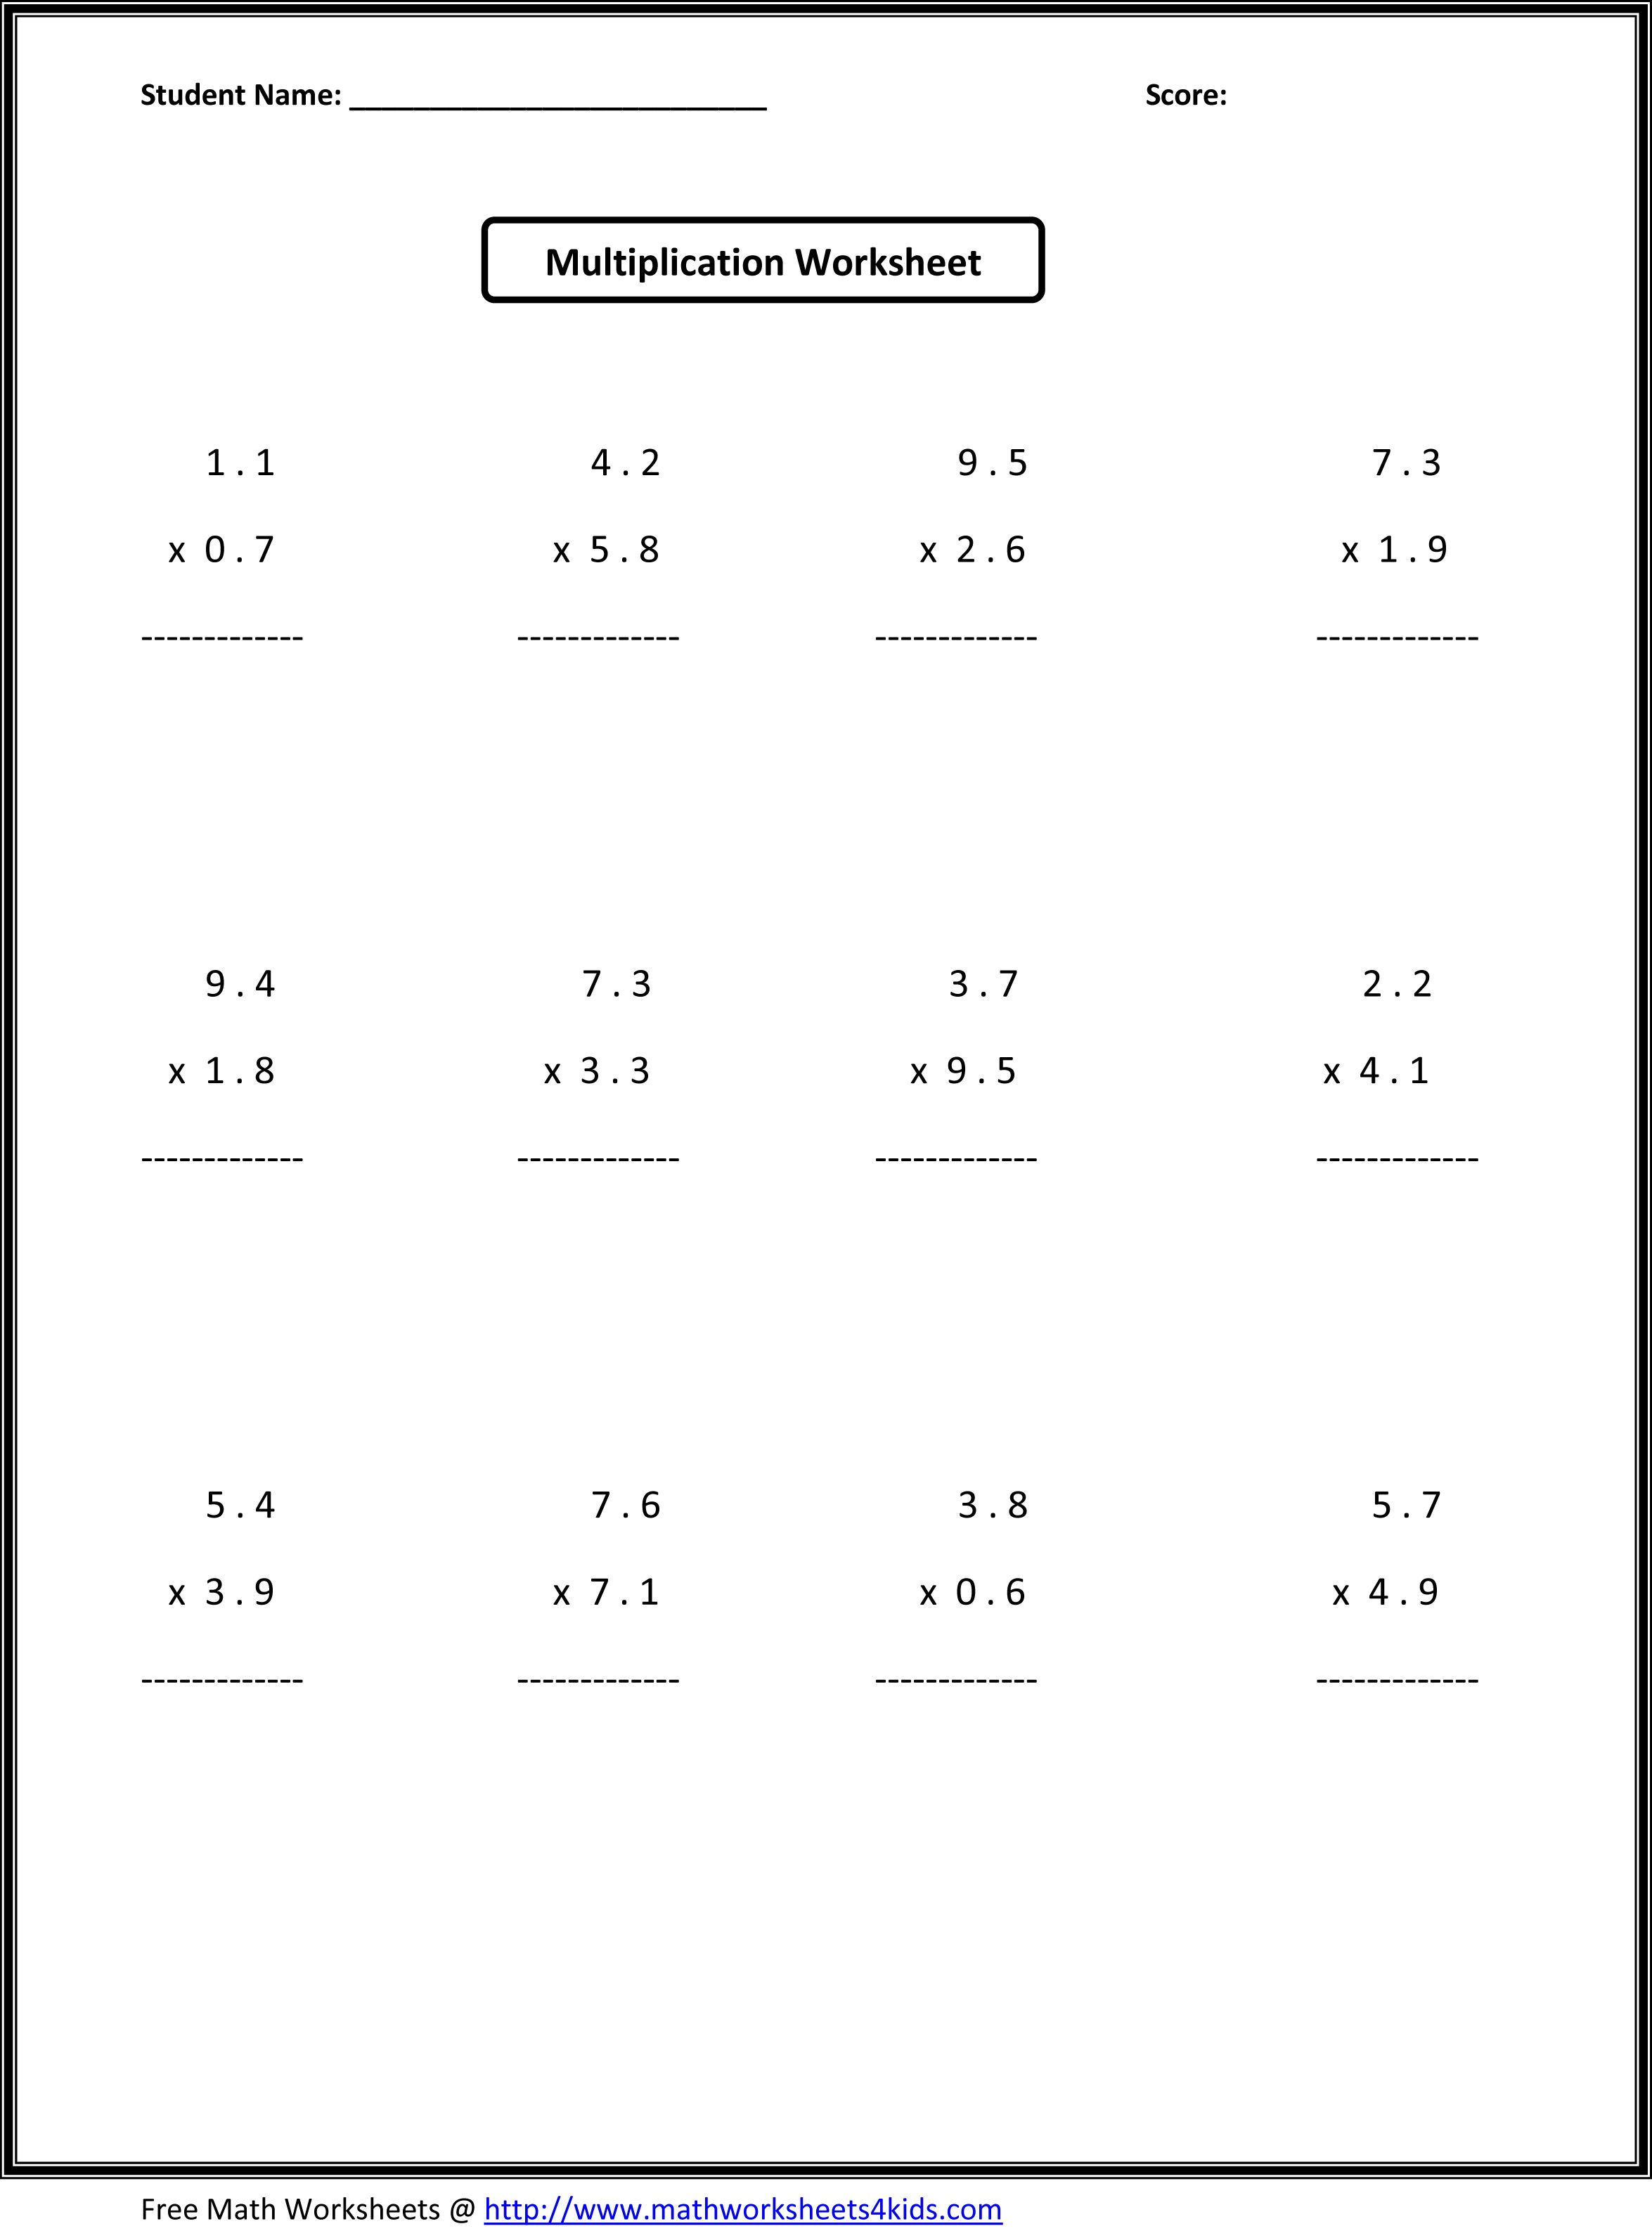 Worksheets Math Worksheets For 6th Graders Printable 7th grade math worksheets value absolute sixth have ratio multiplying and dividing fractions